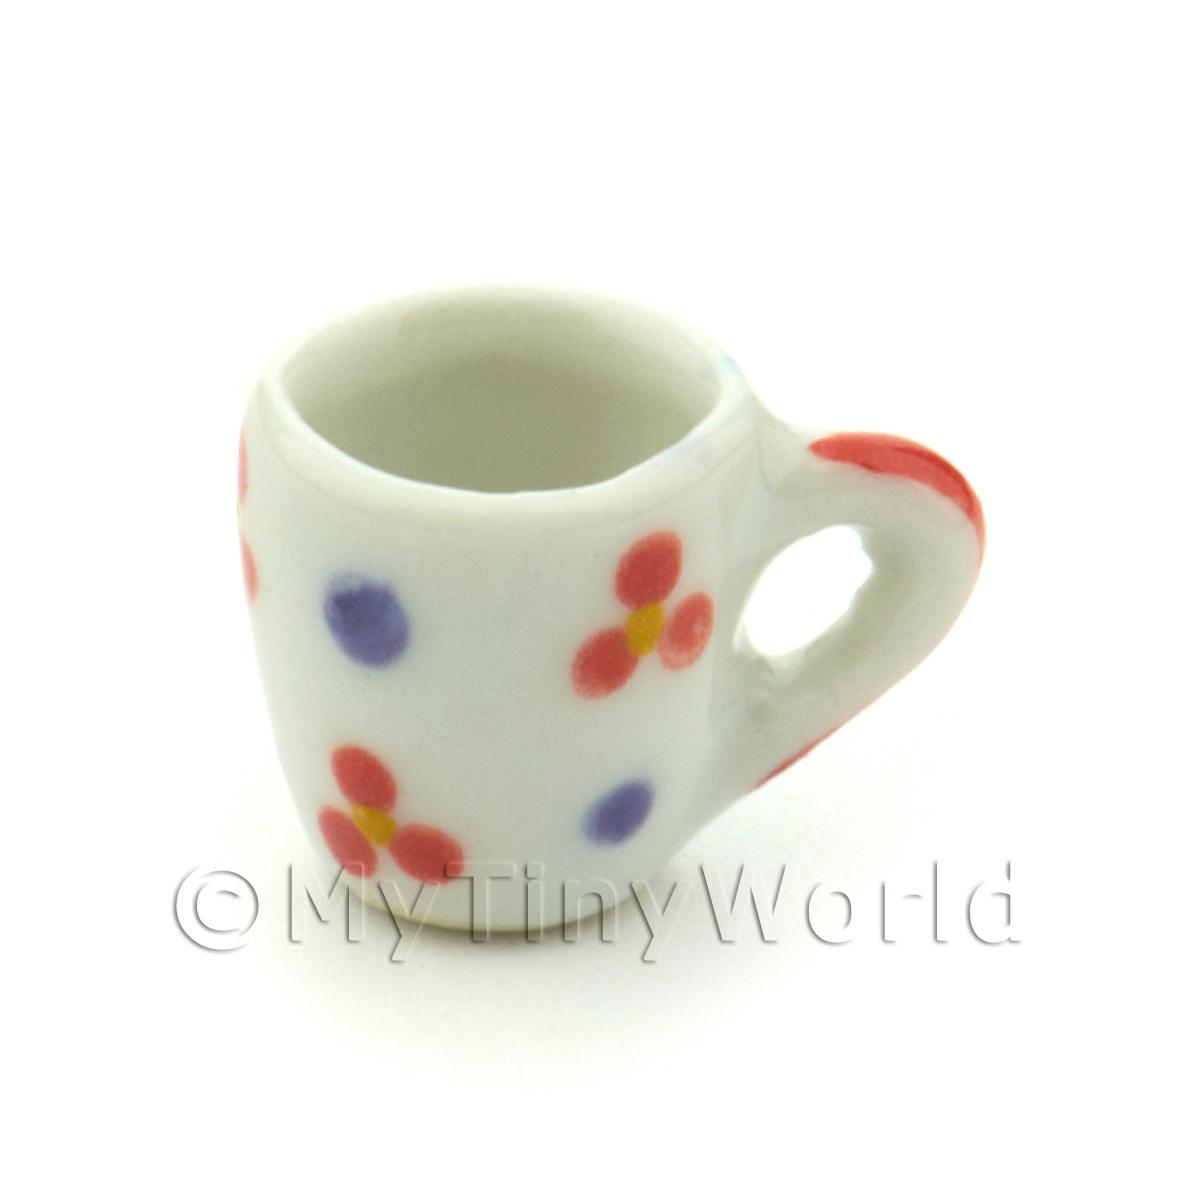 Dolls House Miniature Flower Design Ceramic Soup Mug